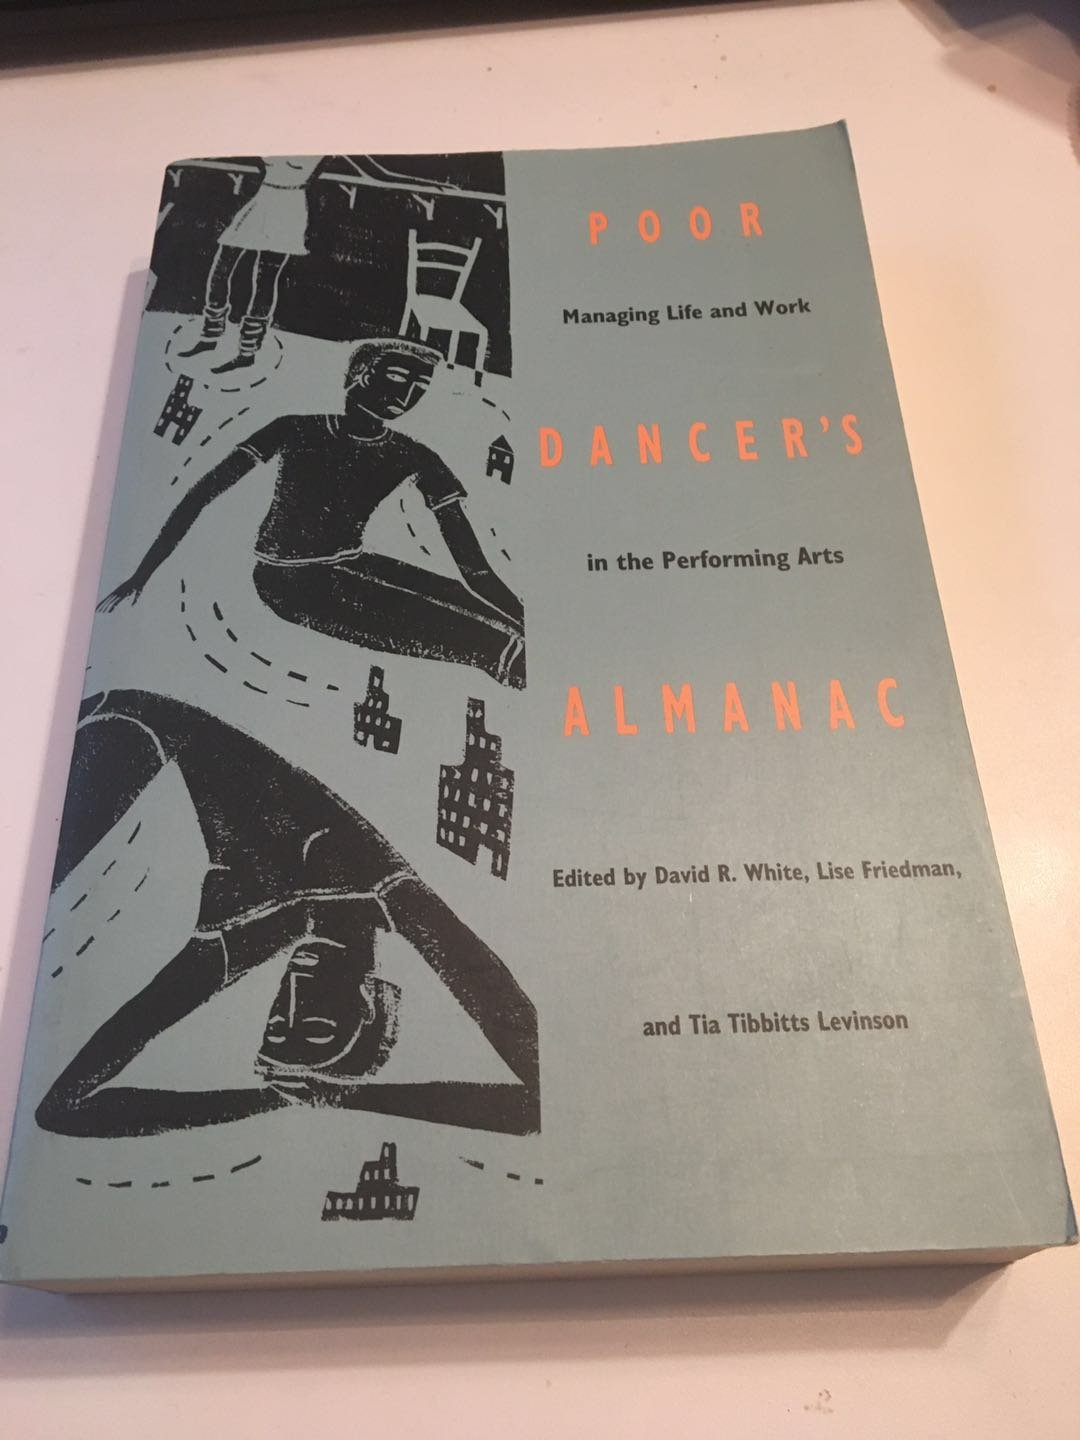 Poor Dancer's Almanac: Managing Life & Work in the Performing Arts 1993 by White and Friedman